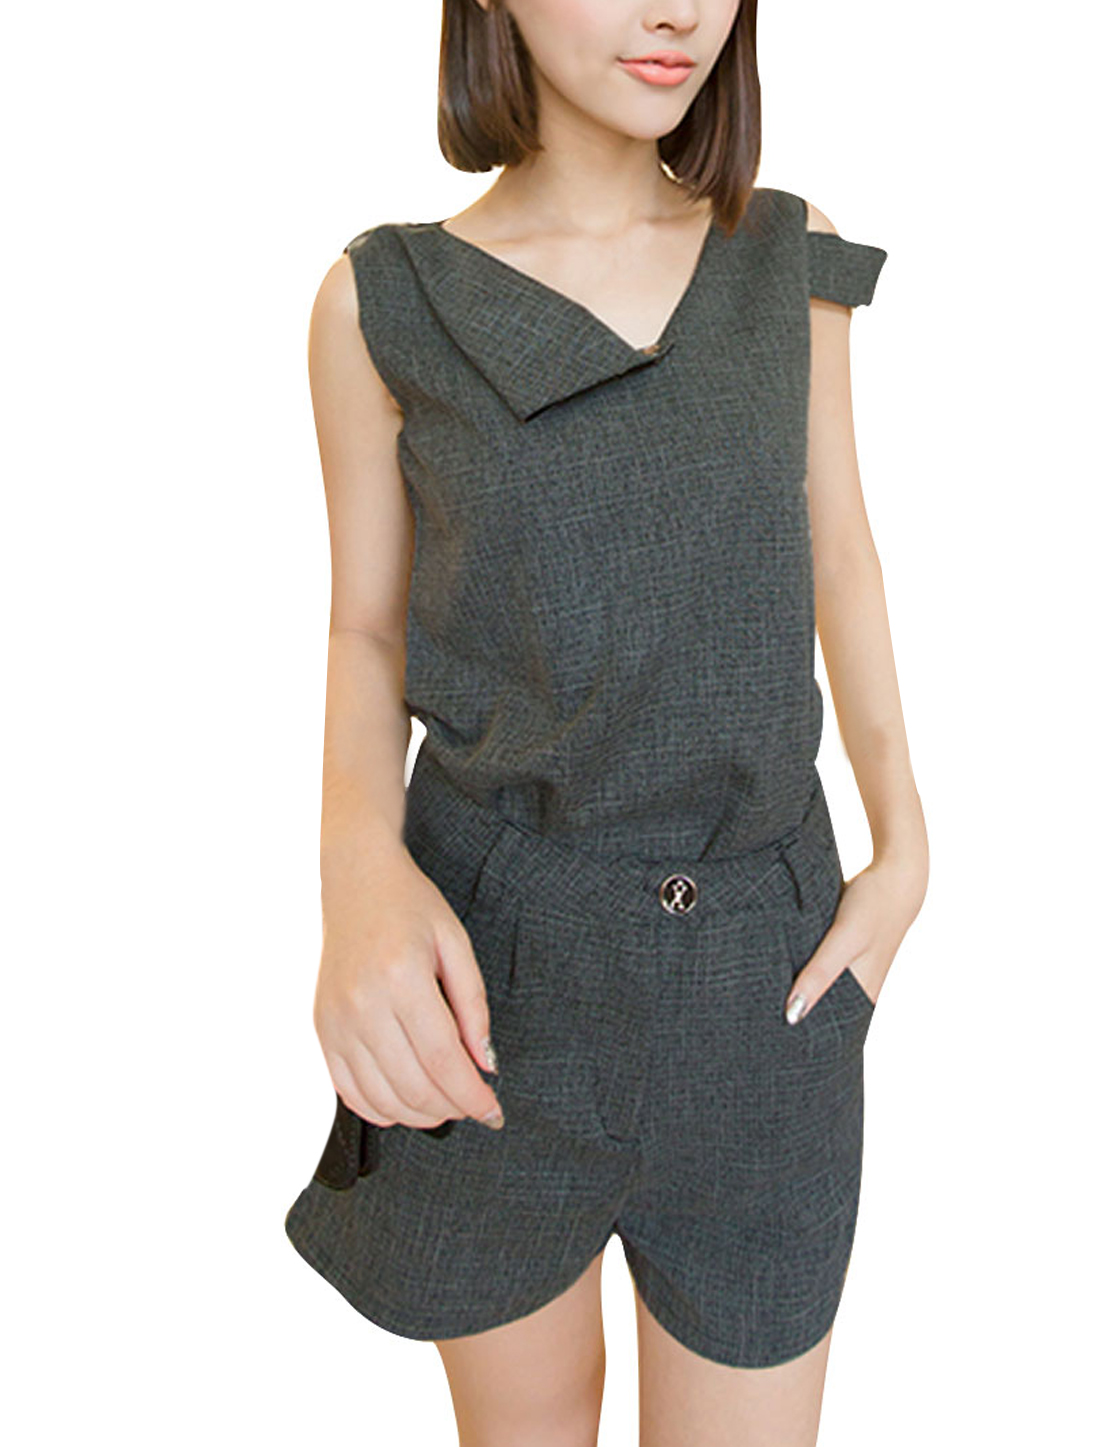 Ladies XS Dark Grey Stylish Sleeveless Top w Button Closure Zip Fly Shorts